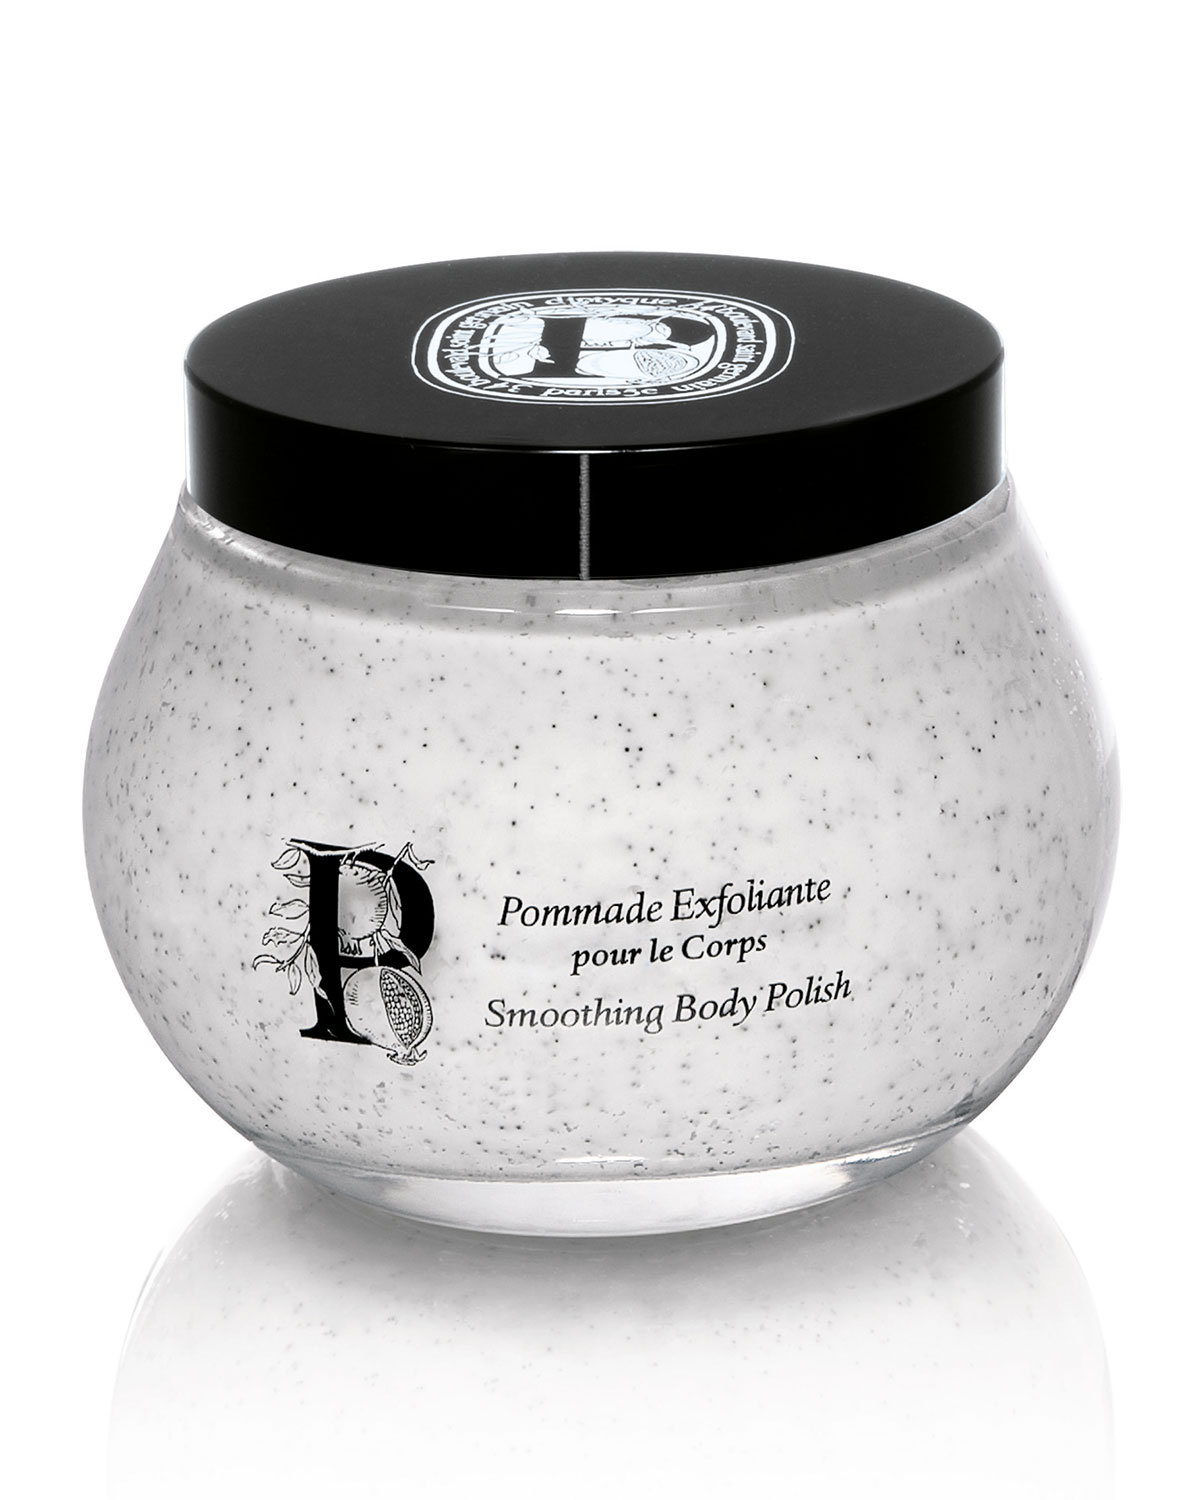 Diptyque Smoothing Body Polish